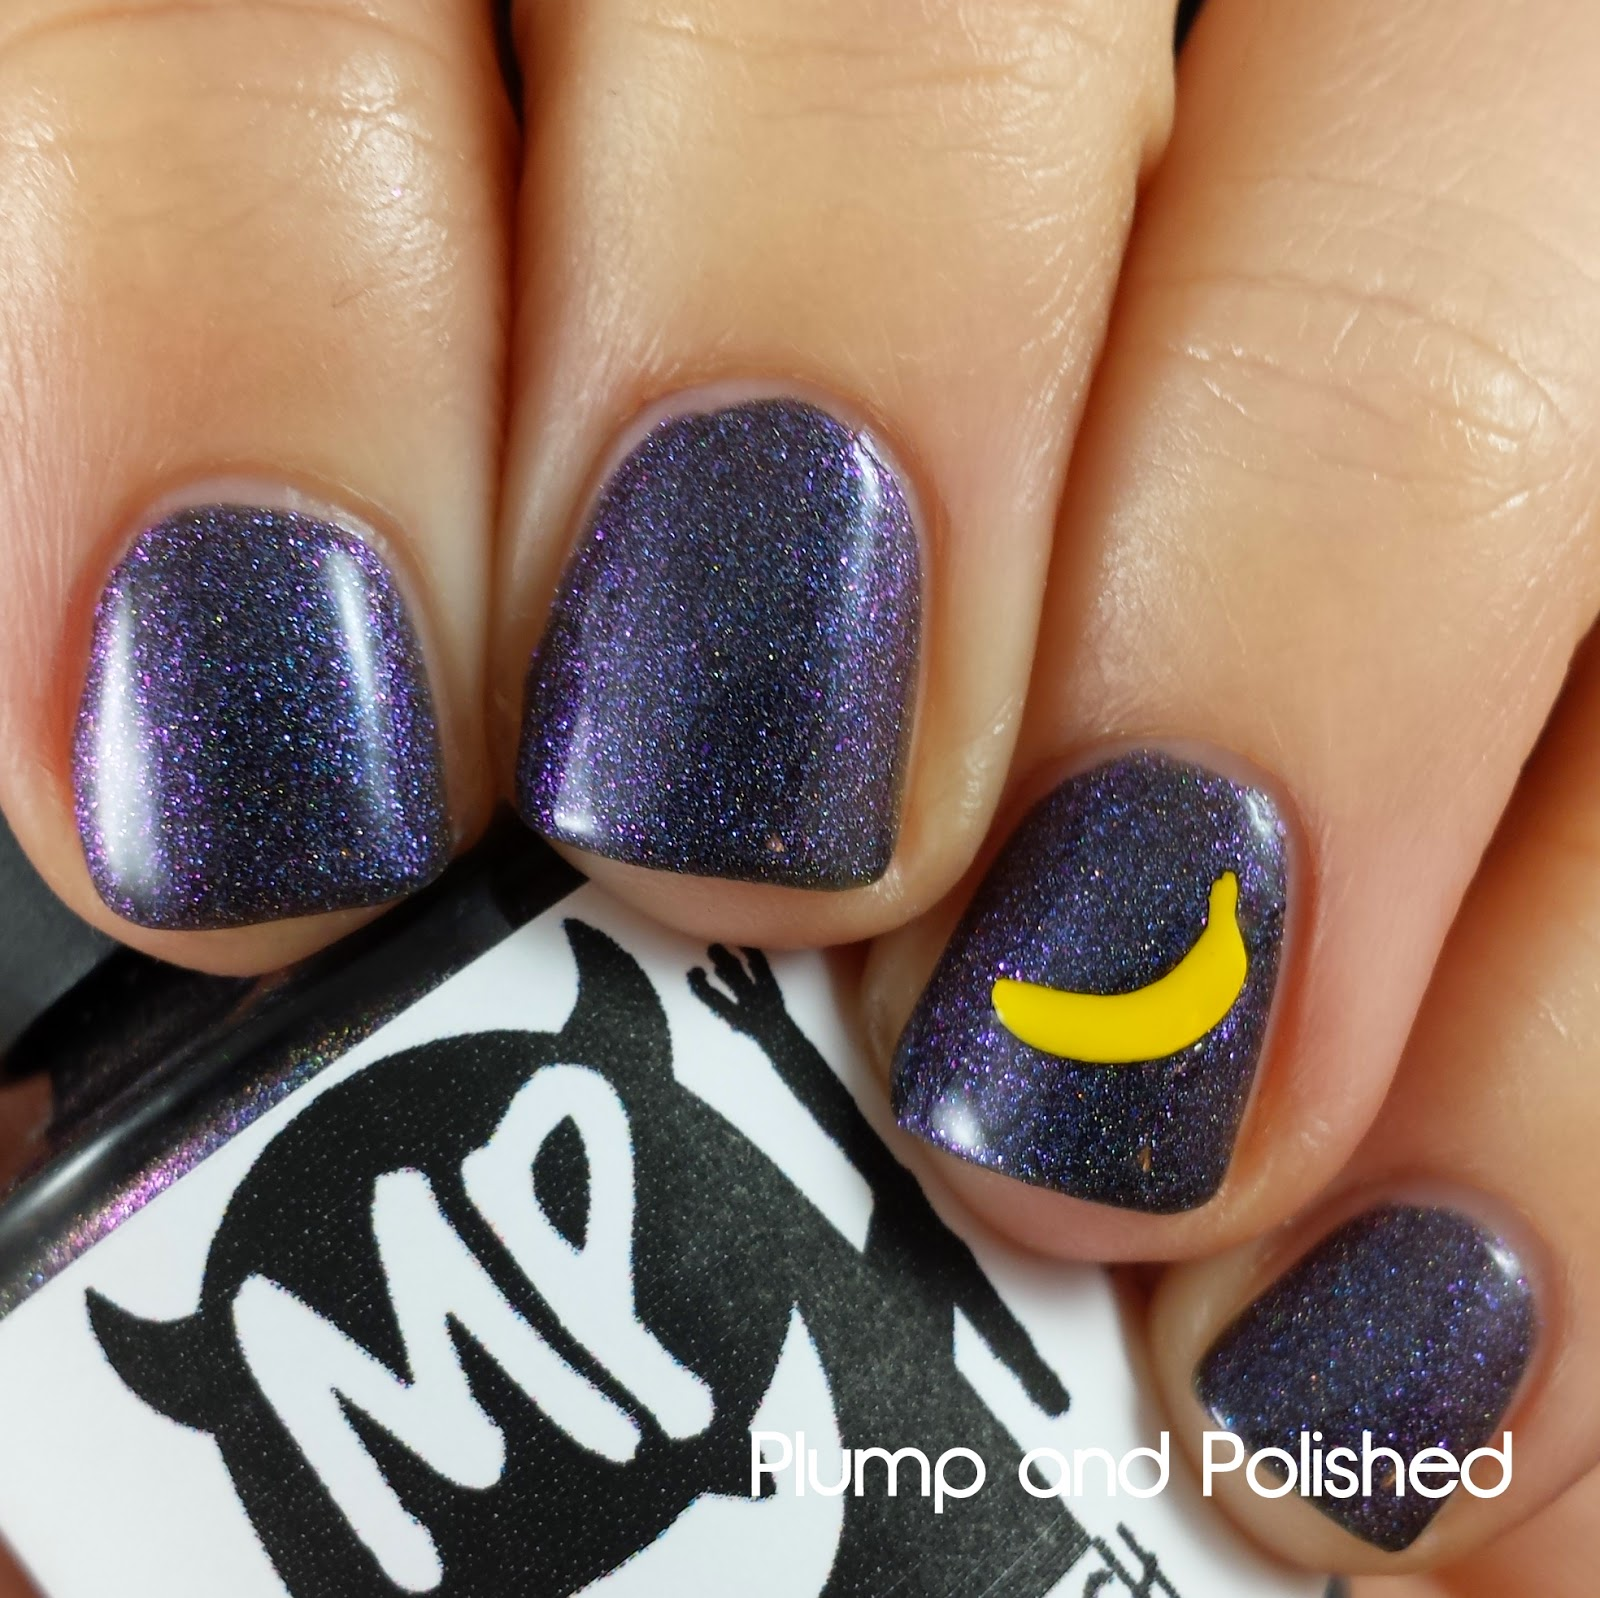 Monster Polish - What's Wrong With This Jumper?